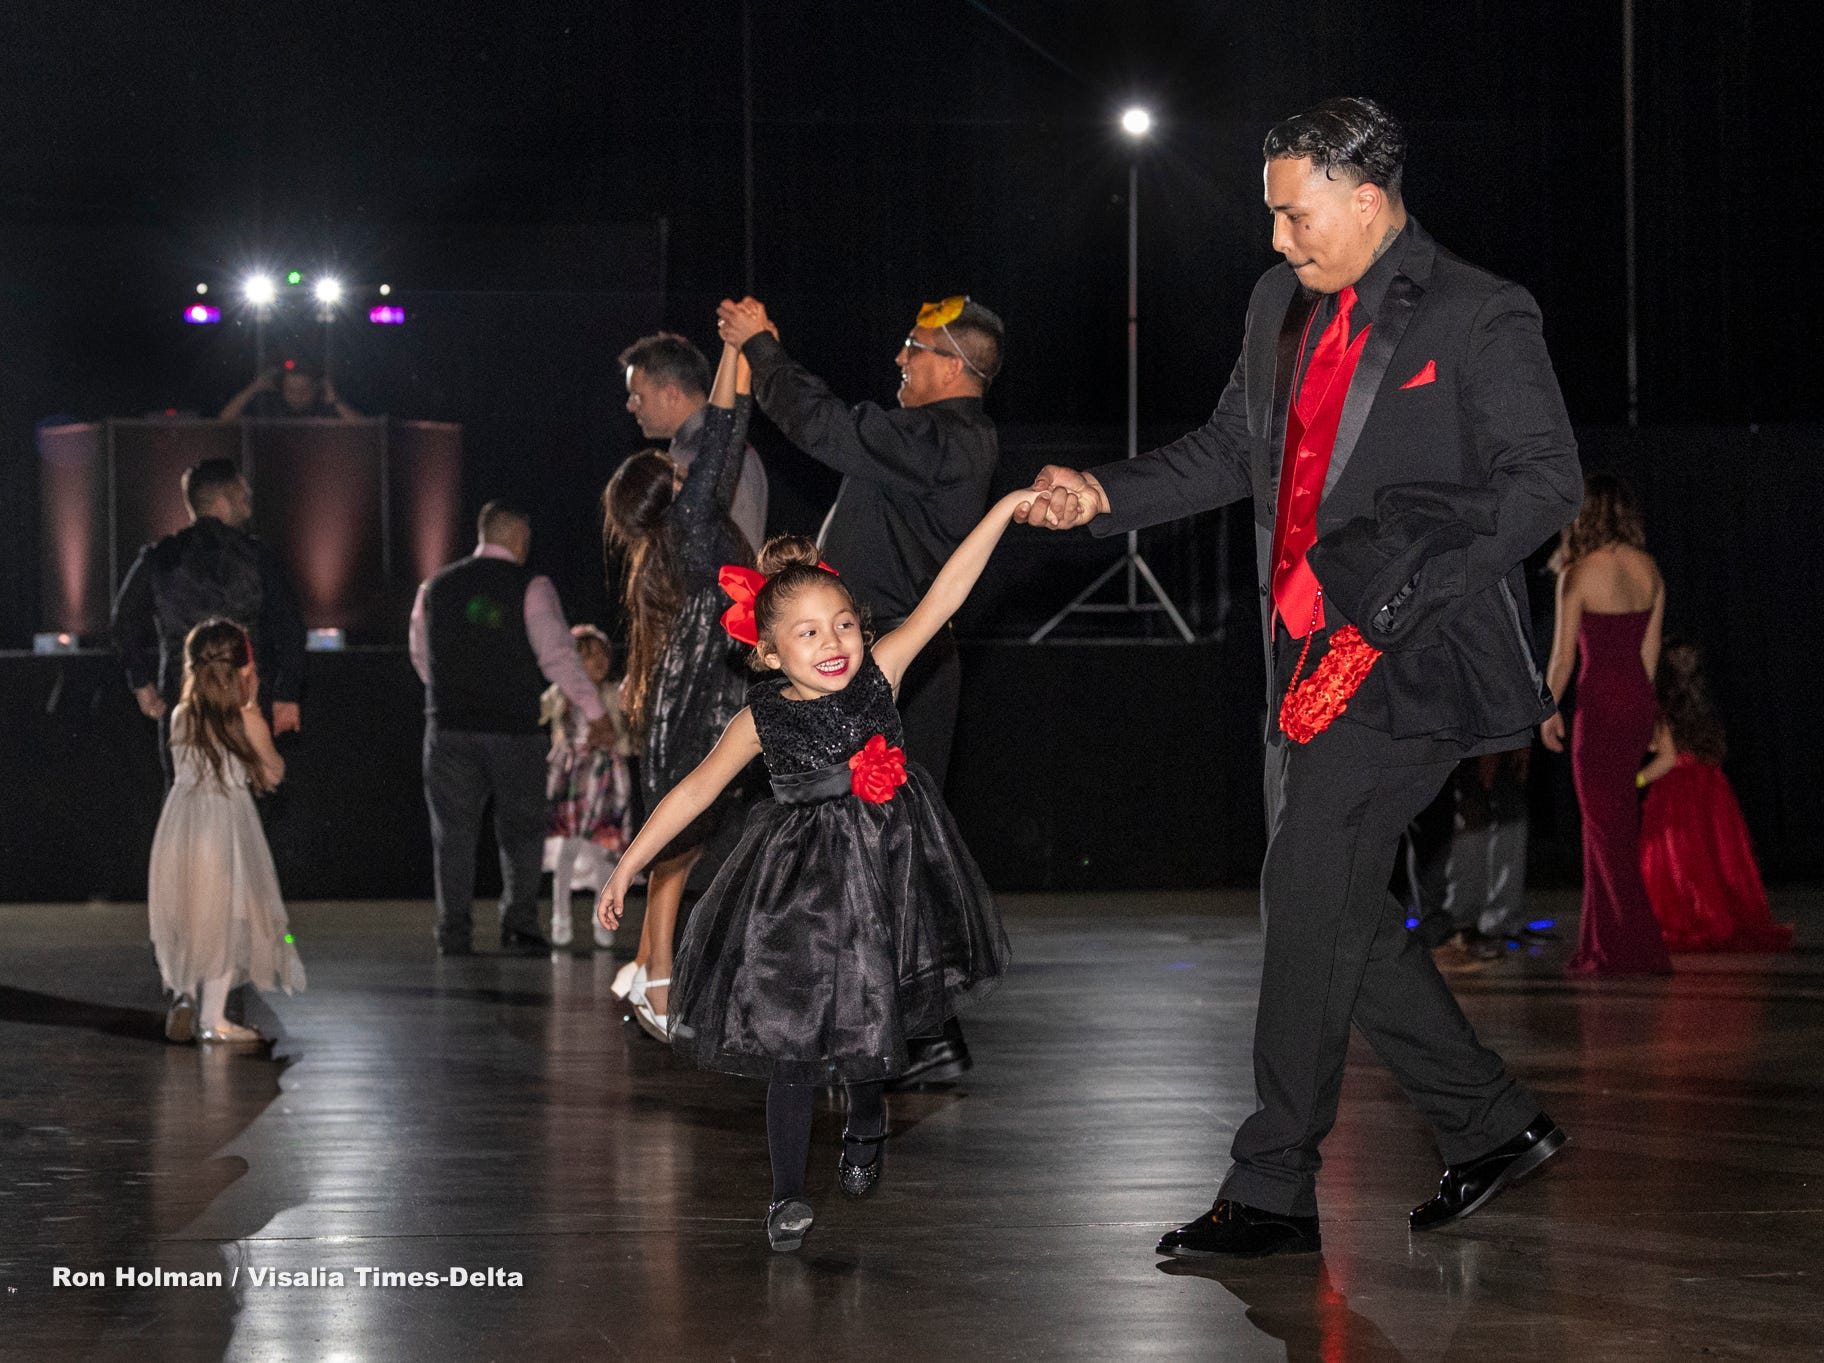 """Samuel Rangel, right, swings his daughter Ariana, 4, during the annual Father-Daughter Dance at the Visalia Convention Center on Saturday, February 16, 2019. This year's theme was """"Masquerade Ball,"""" and included music, dancing and refreshments."""